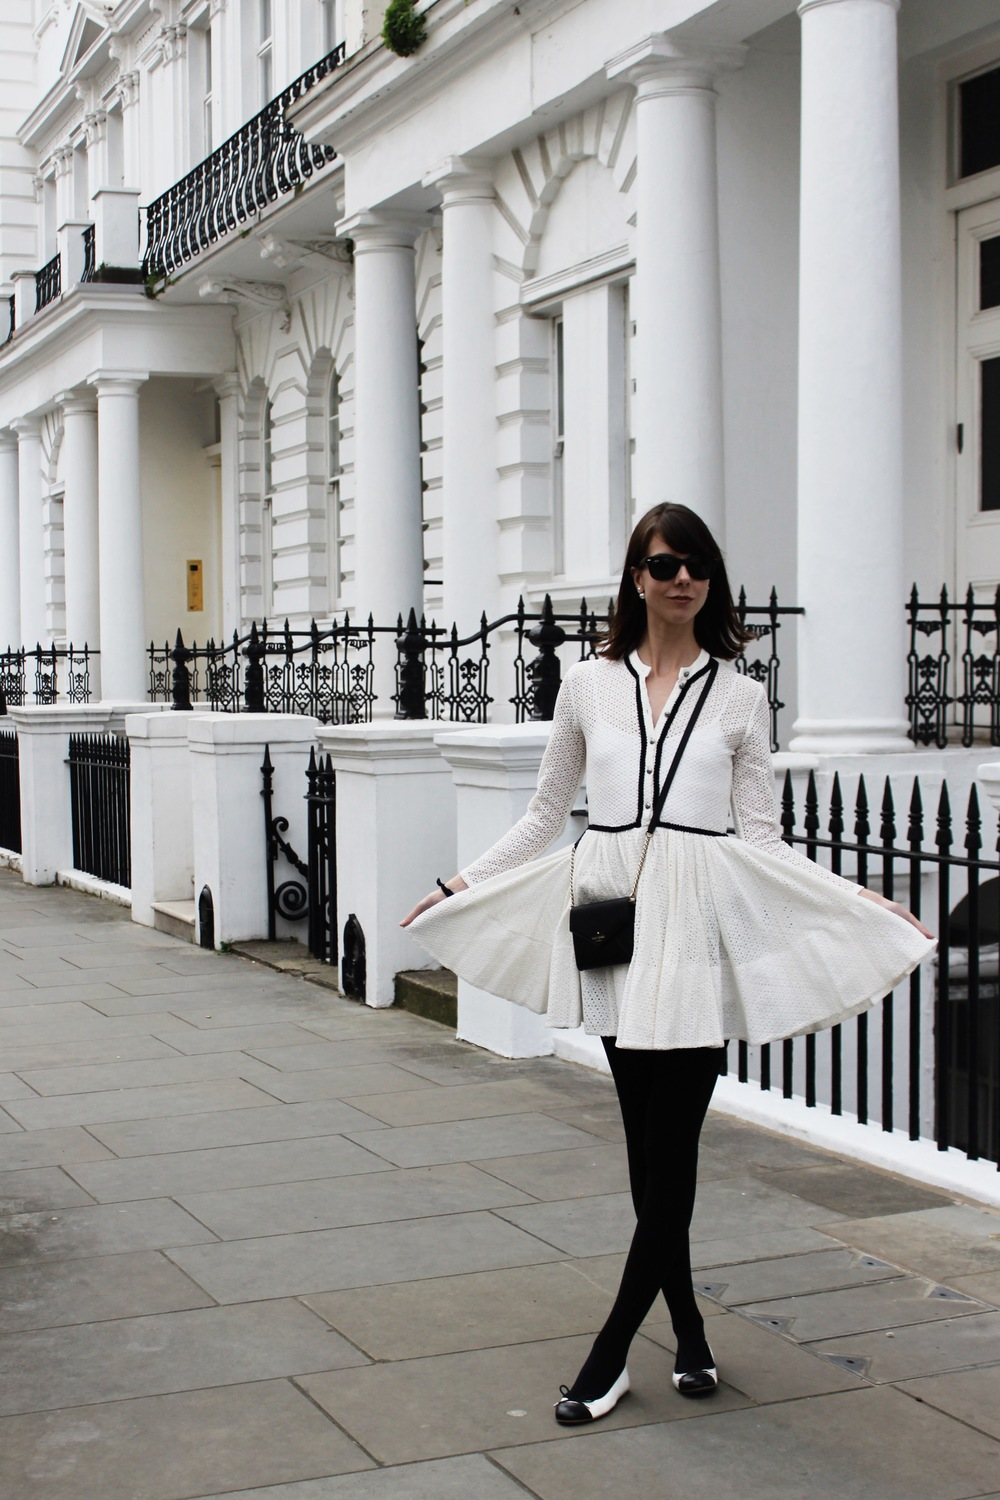 Lace in London - Maje Dress, Kate Spade Crossbody | Sundays and Somedays